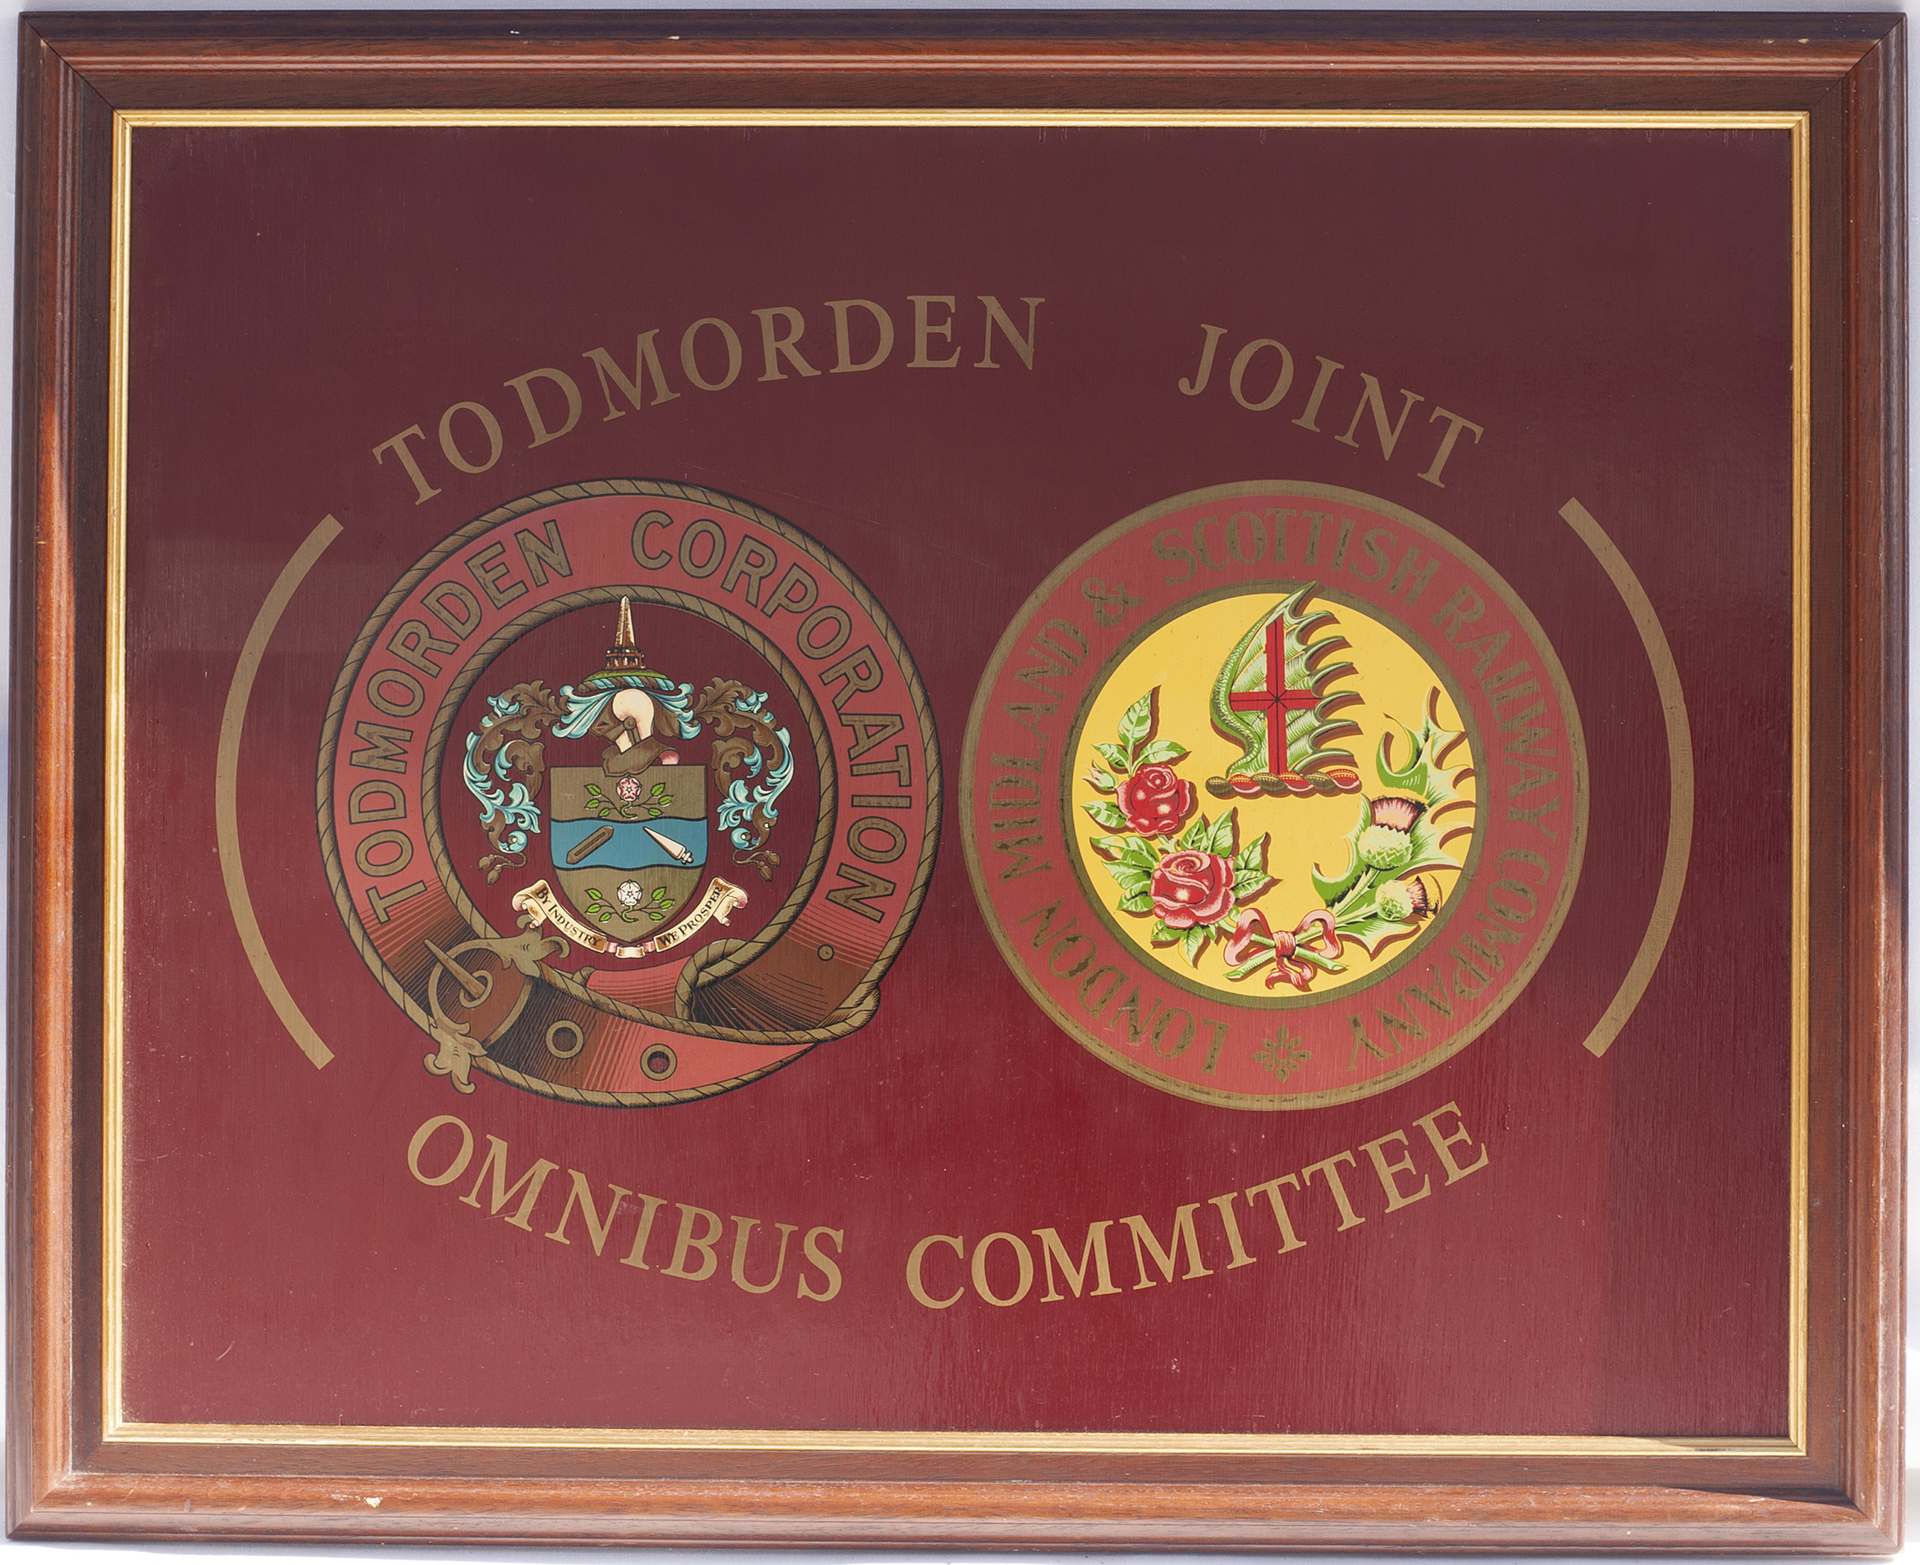 TODMORDEN JOINT OMNIBUS COMMITTEE twin mounted coat of arms. Nicely framed. Measures 31in x 25.5